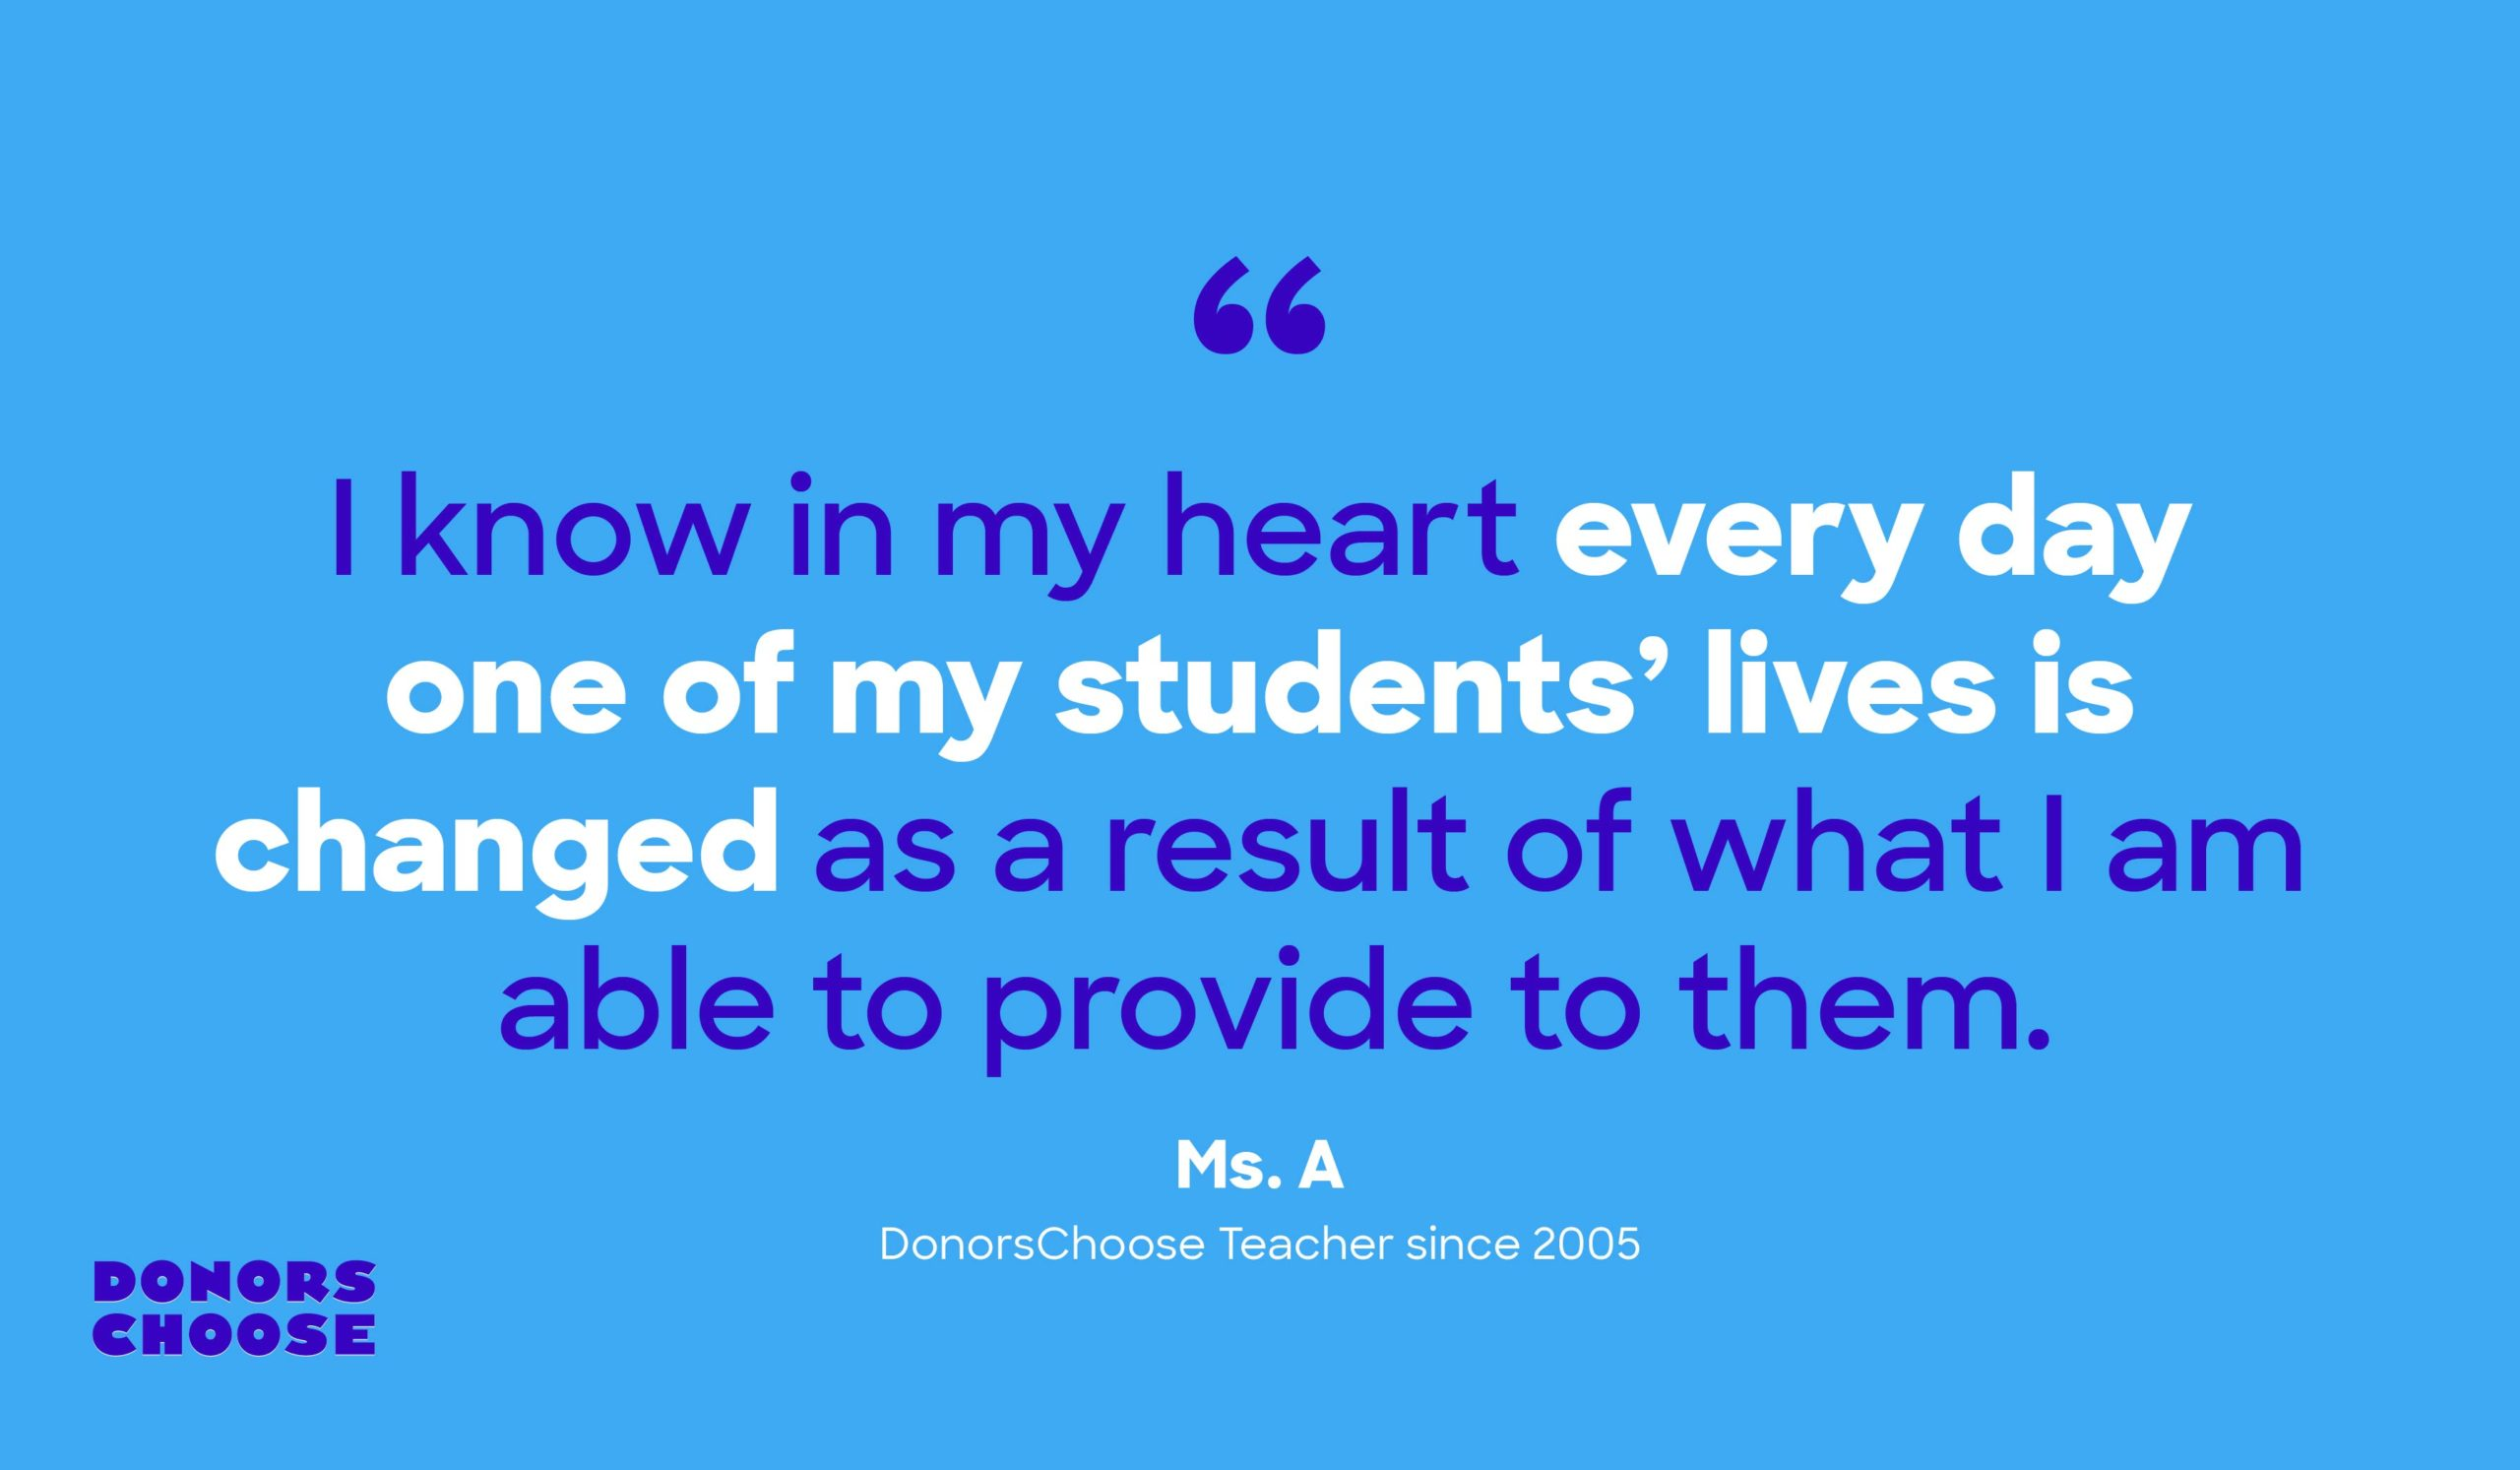 """I know in my heart every day one of my students' lives is changed as a result of what I am able to provide to them."" -Ms. A, DonorsChoose Teacher since 2005"